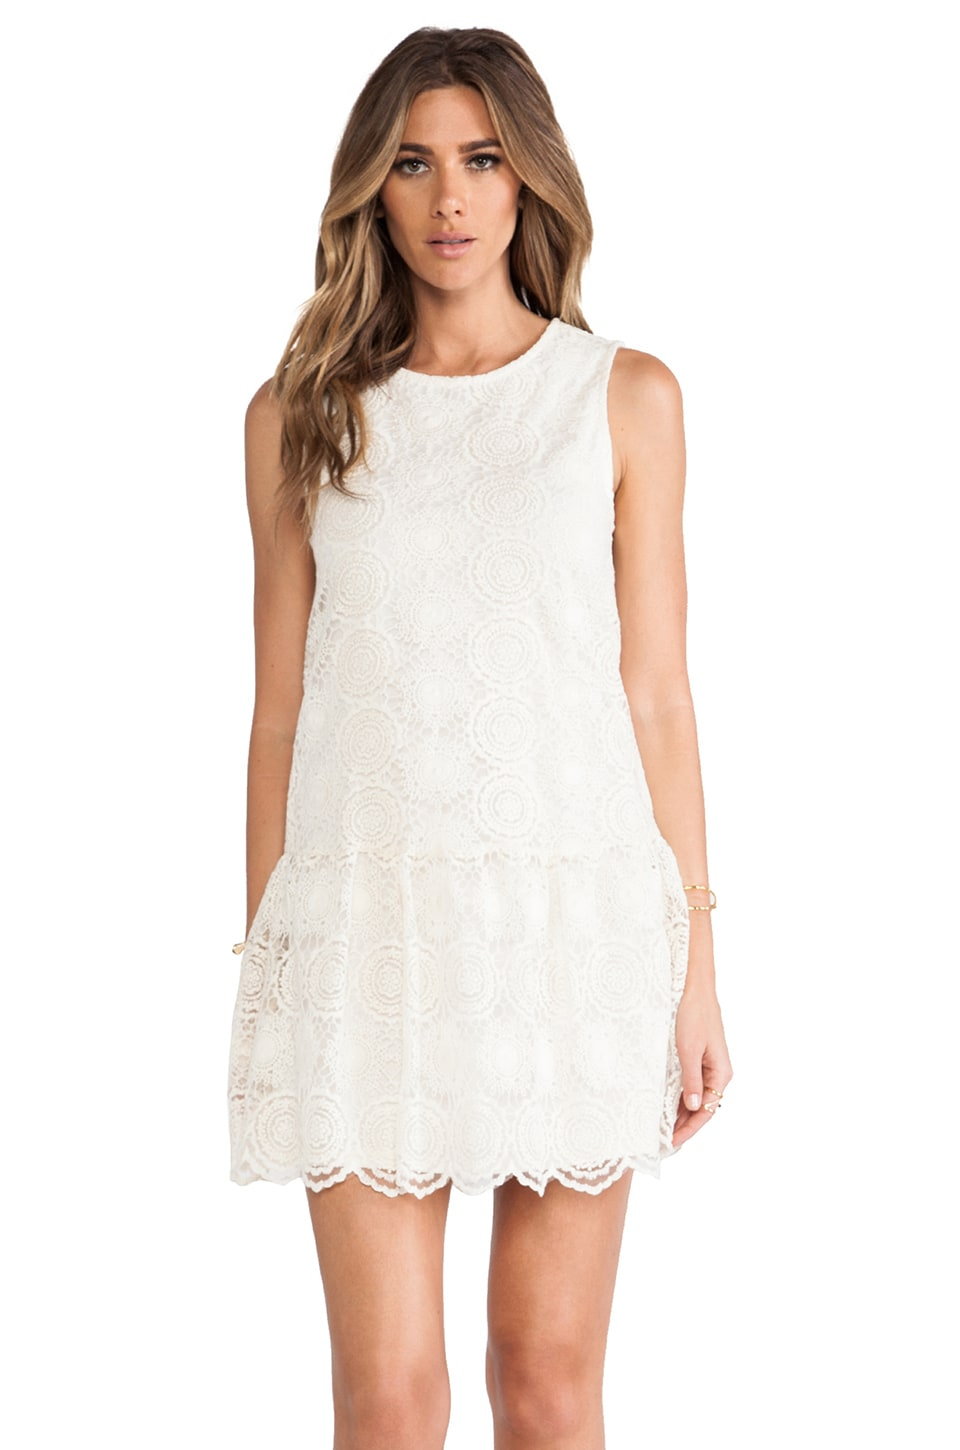 Ella Moss Hanalei Crochet Dress in Natural